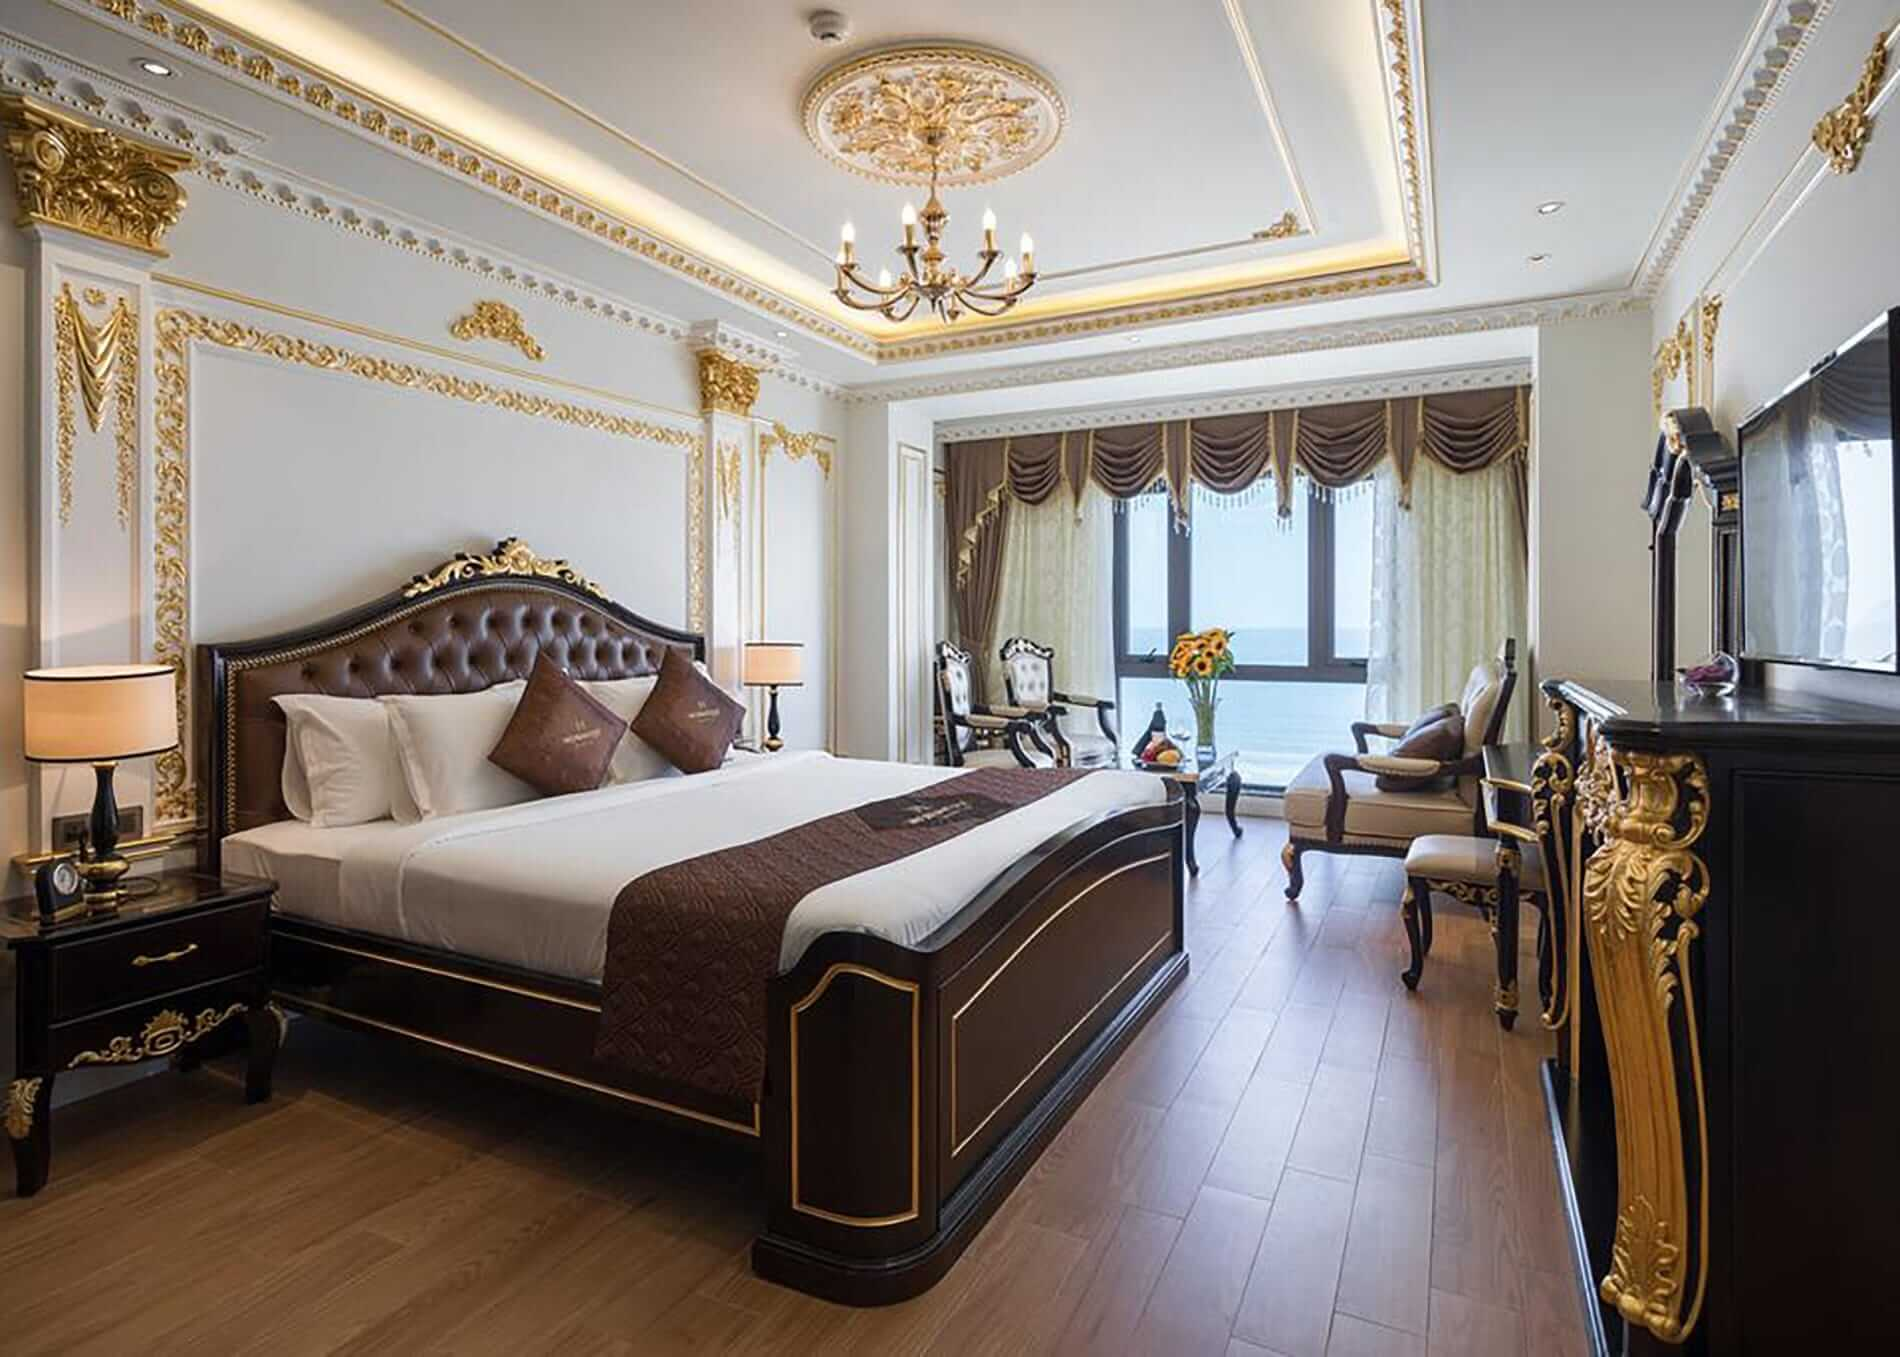 luxurious King room at Monarque Hotel Da Nang